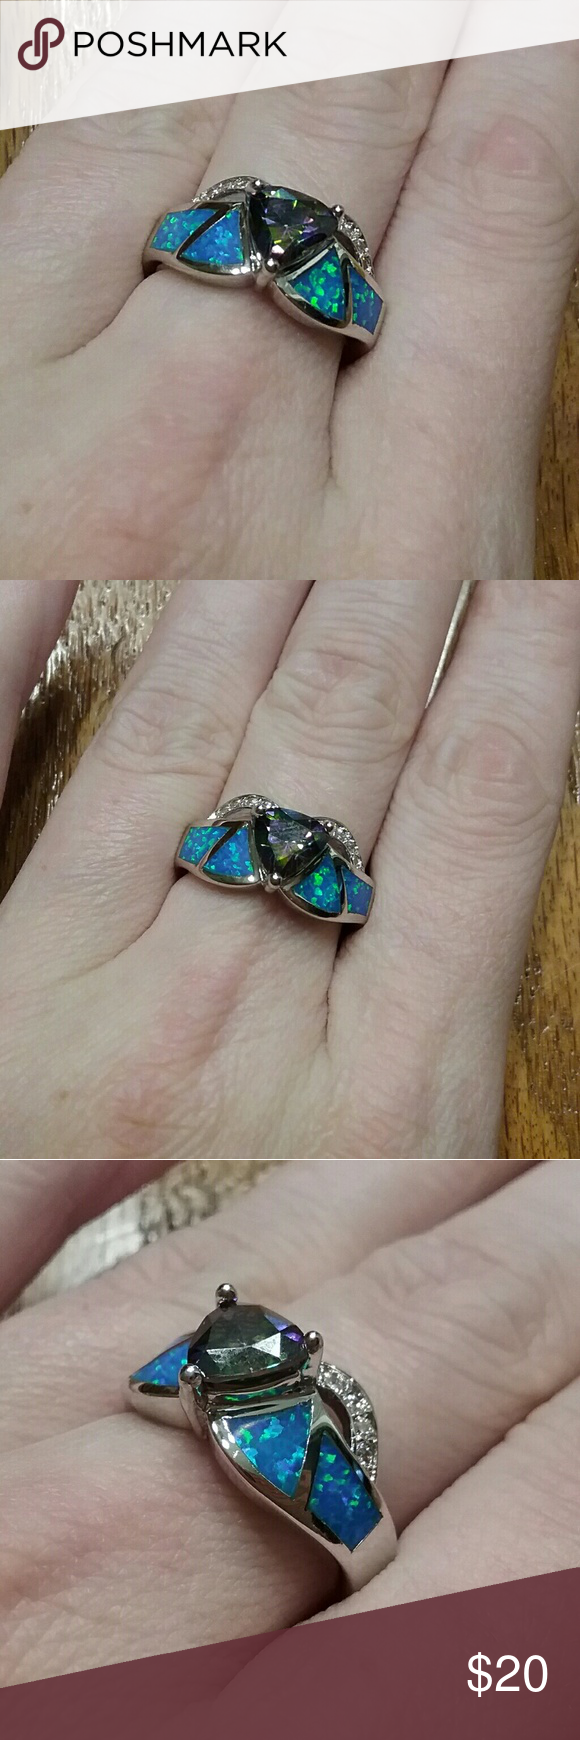 Mystic topaz blue fire Opal size 7 ring marked 925 Brand new Jewelry Rings